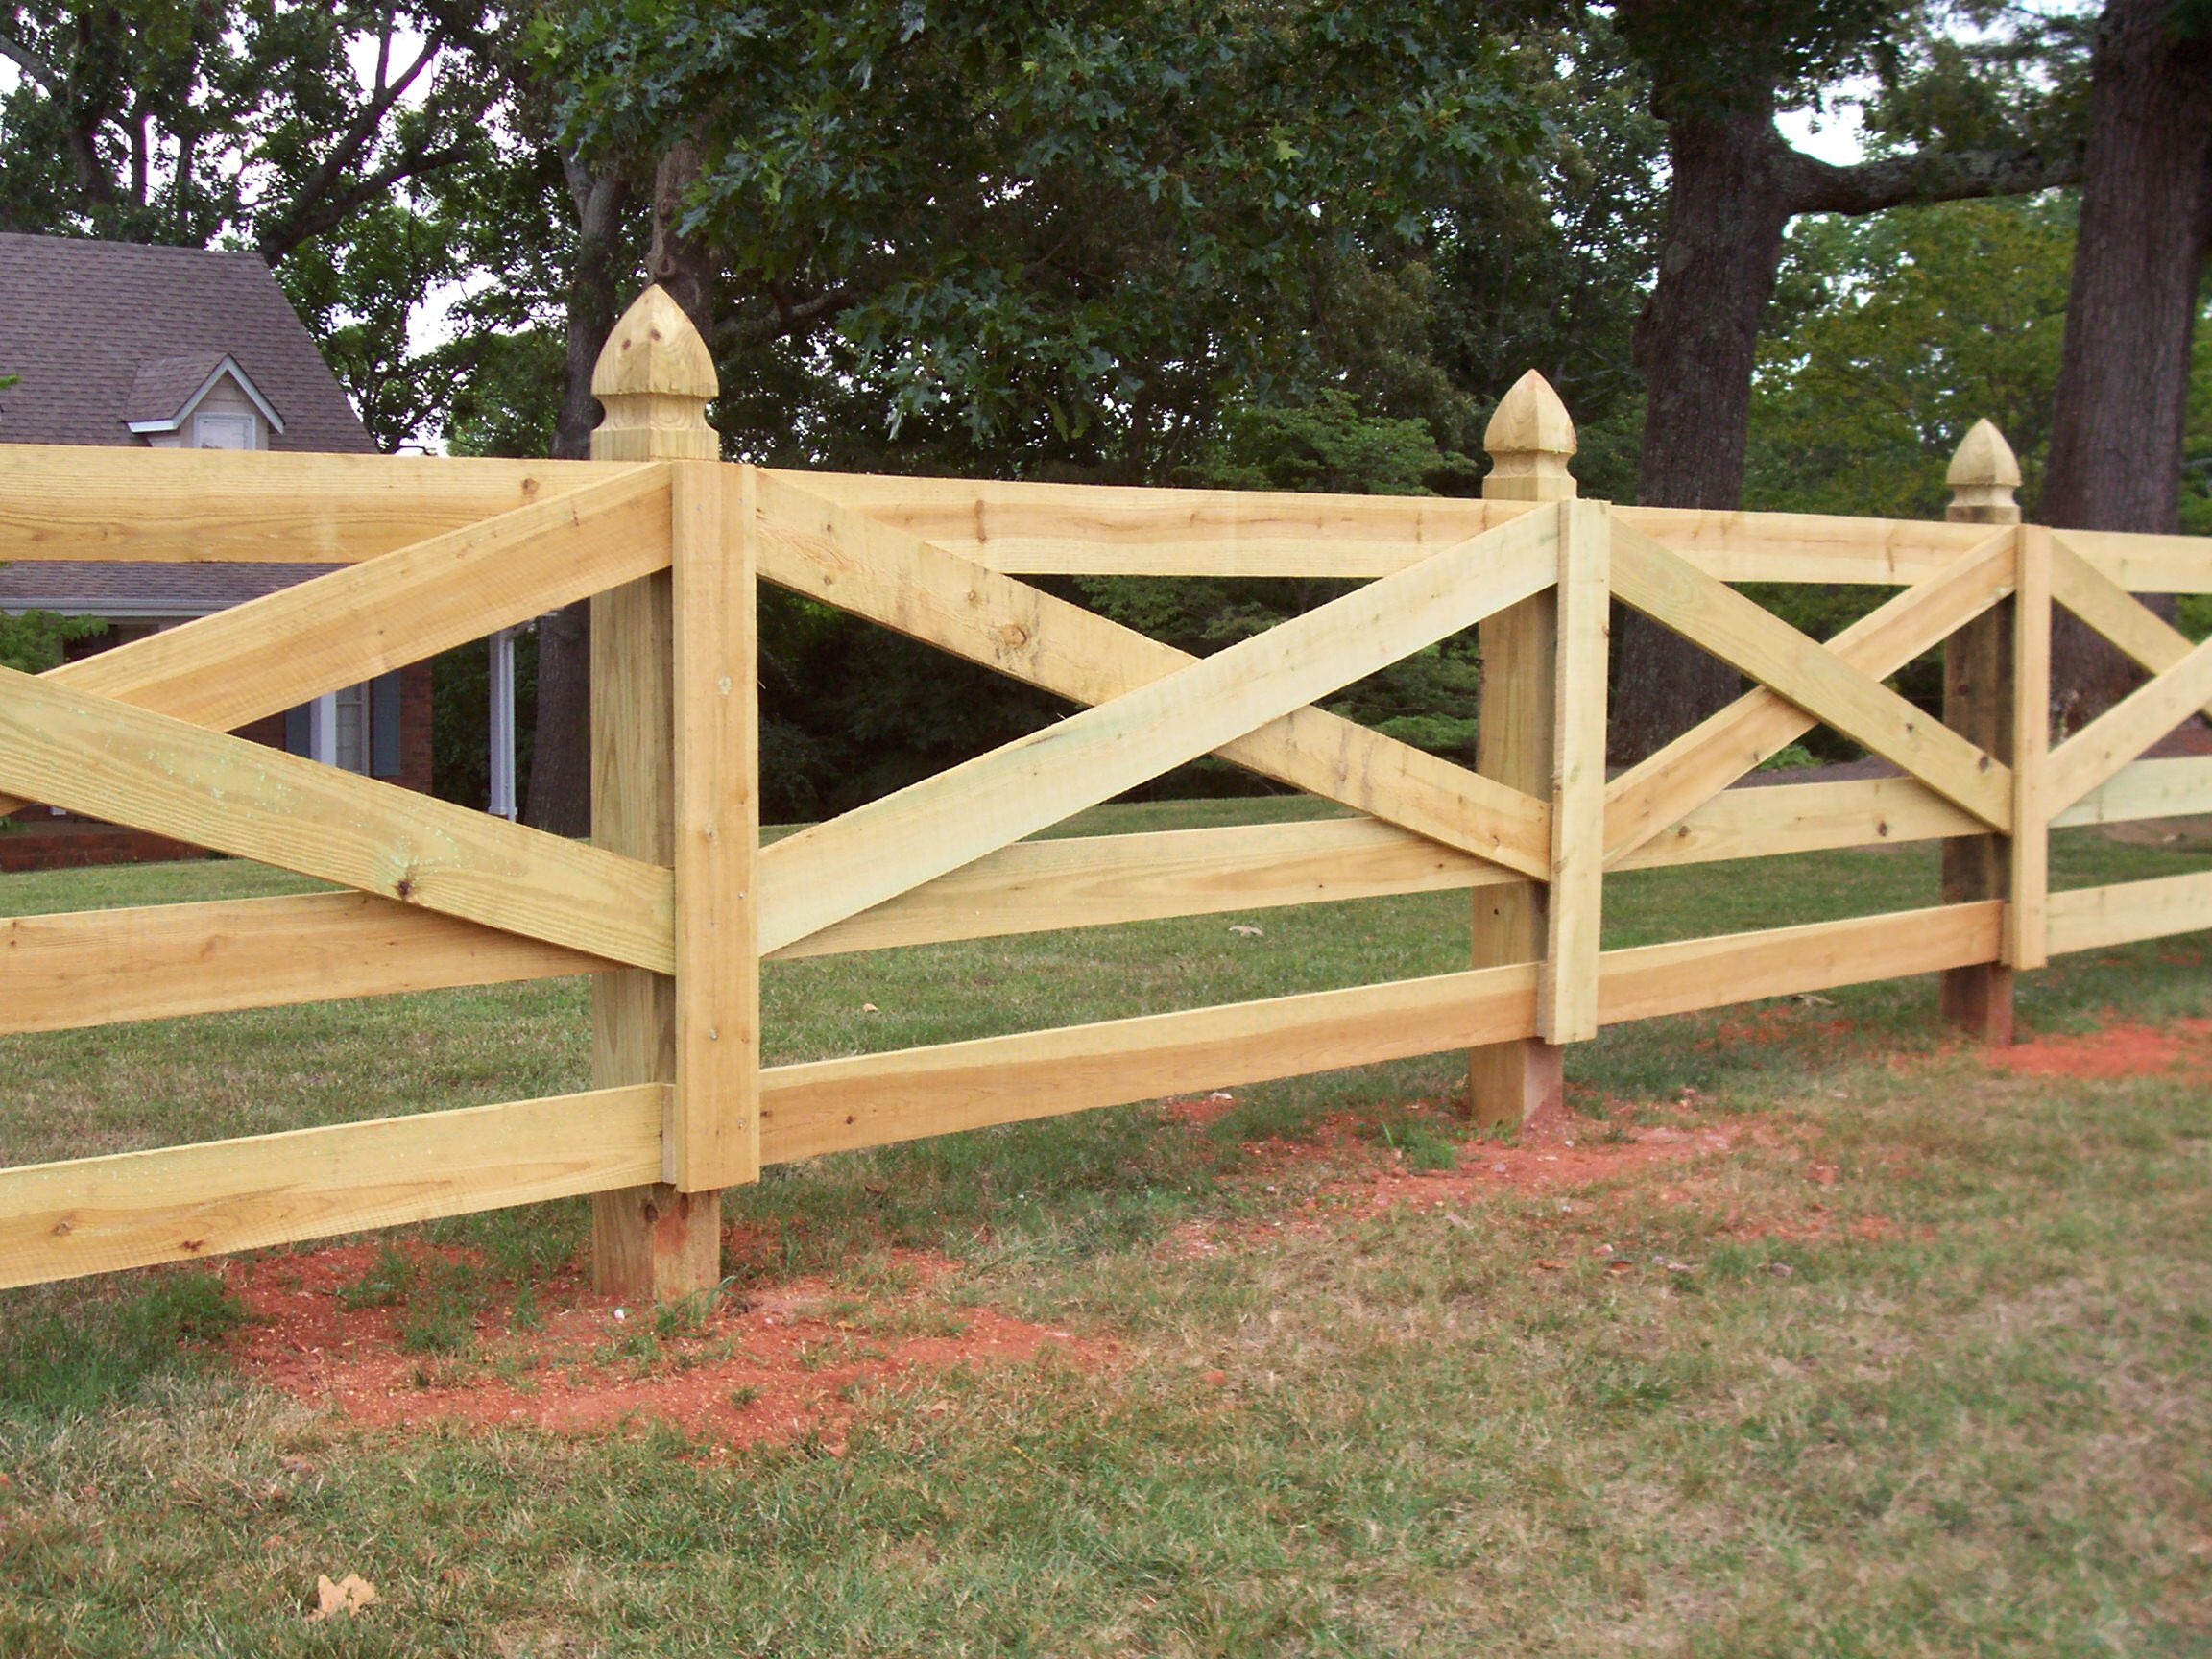 40 Awesome Wood Fence Designs And Ideas